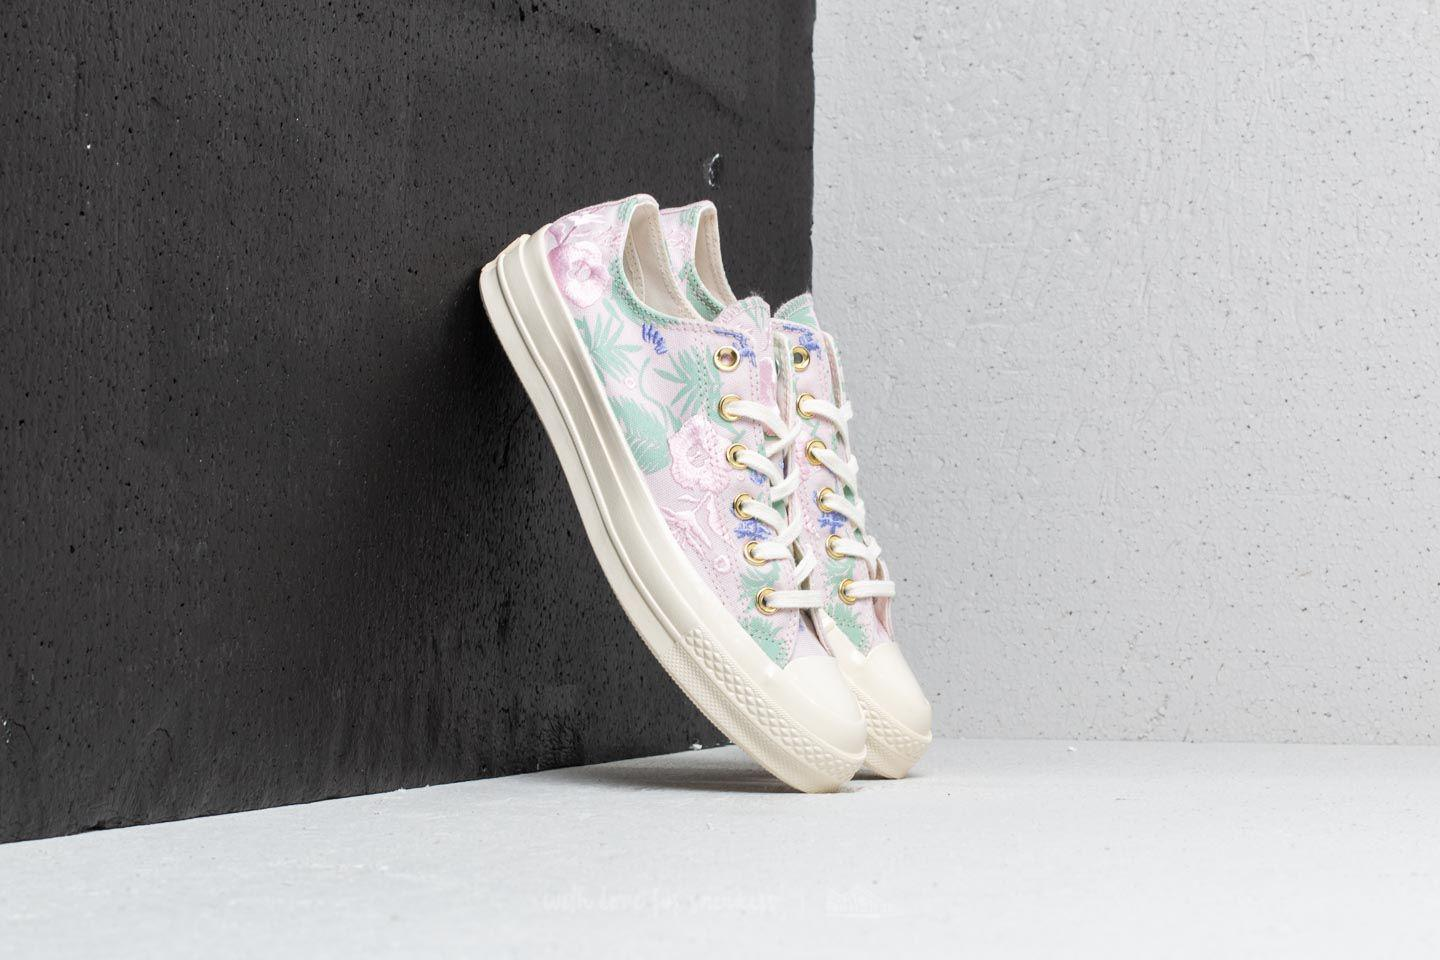 884304cb26f9 converse chuck taylor all star ox shoes barely rose Lyst - Converse Chuck  Taylor All Star 70 Ox Barely Rose  Jaded  Egret